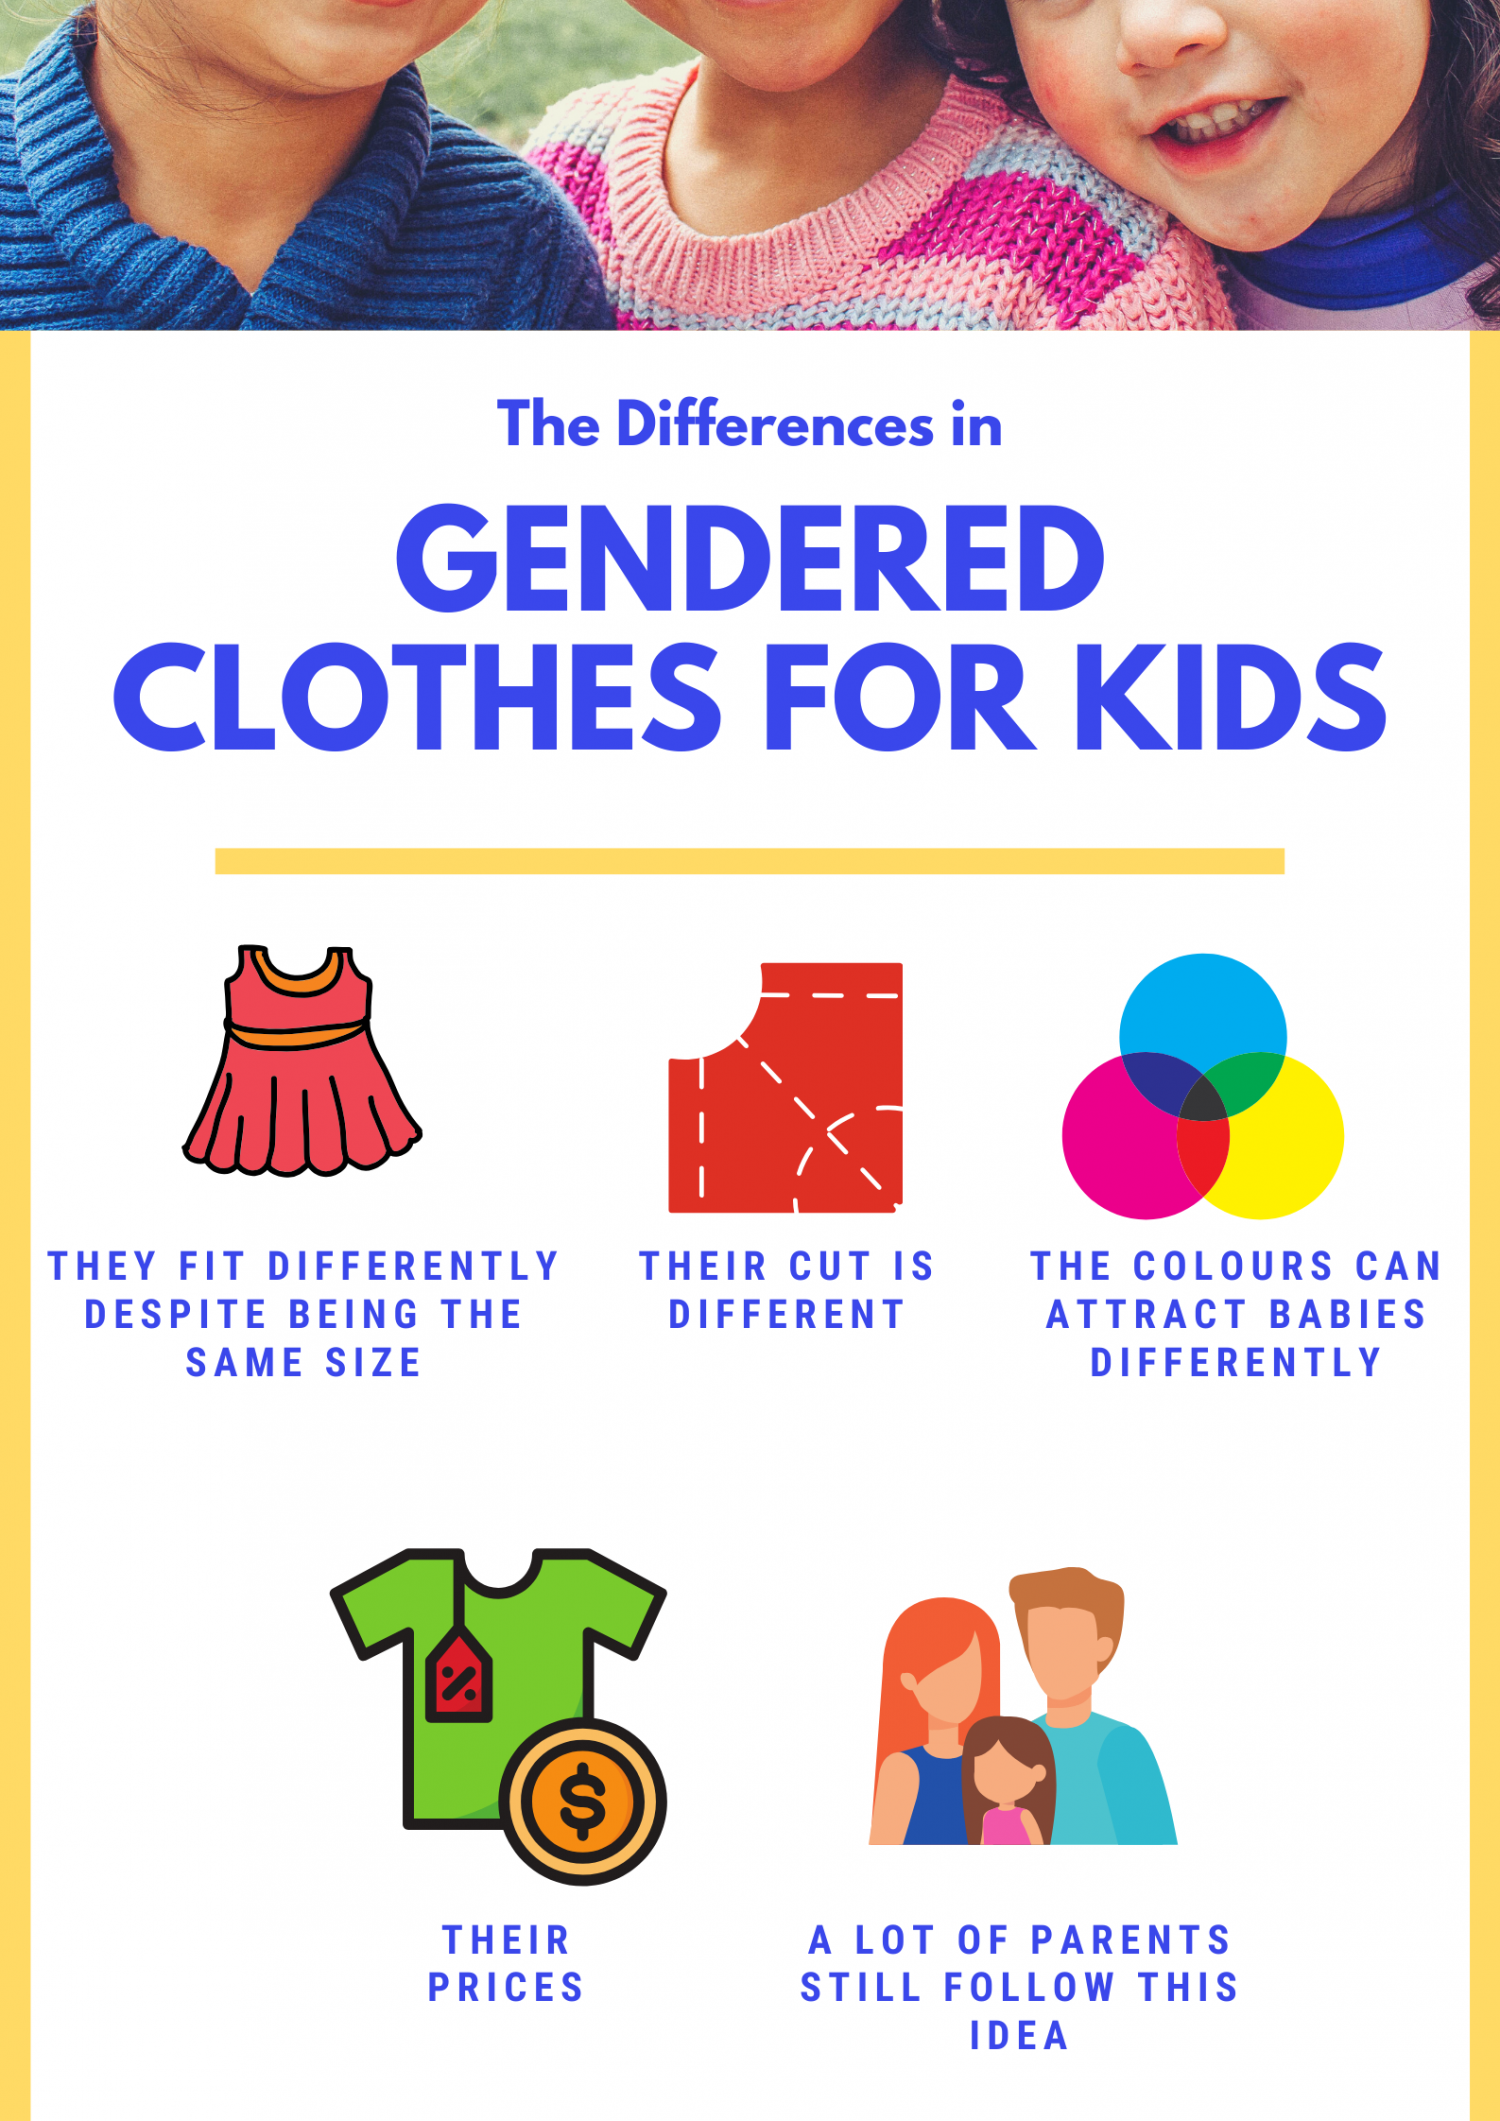 The Differences in Gendered Clothes for Kids Infographic